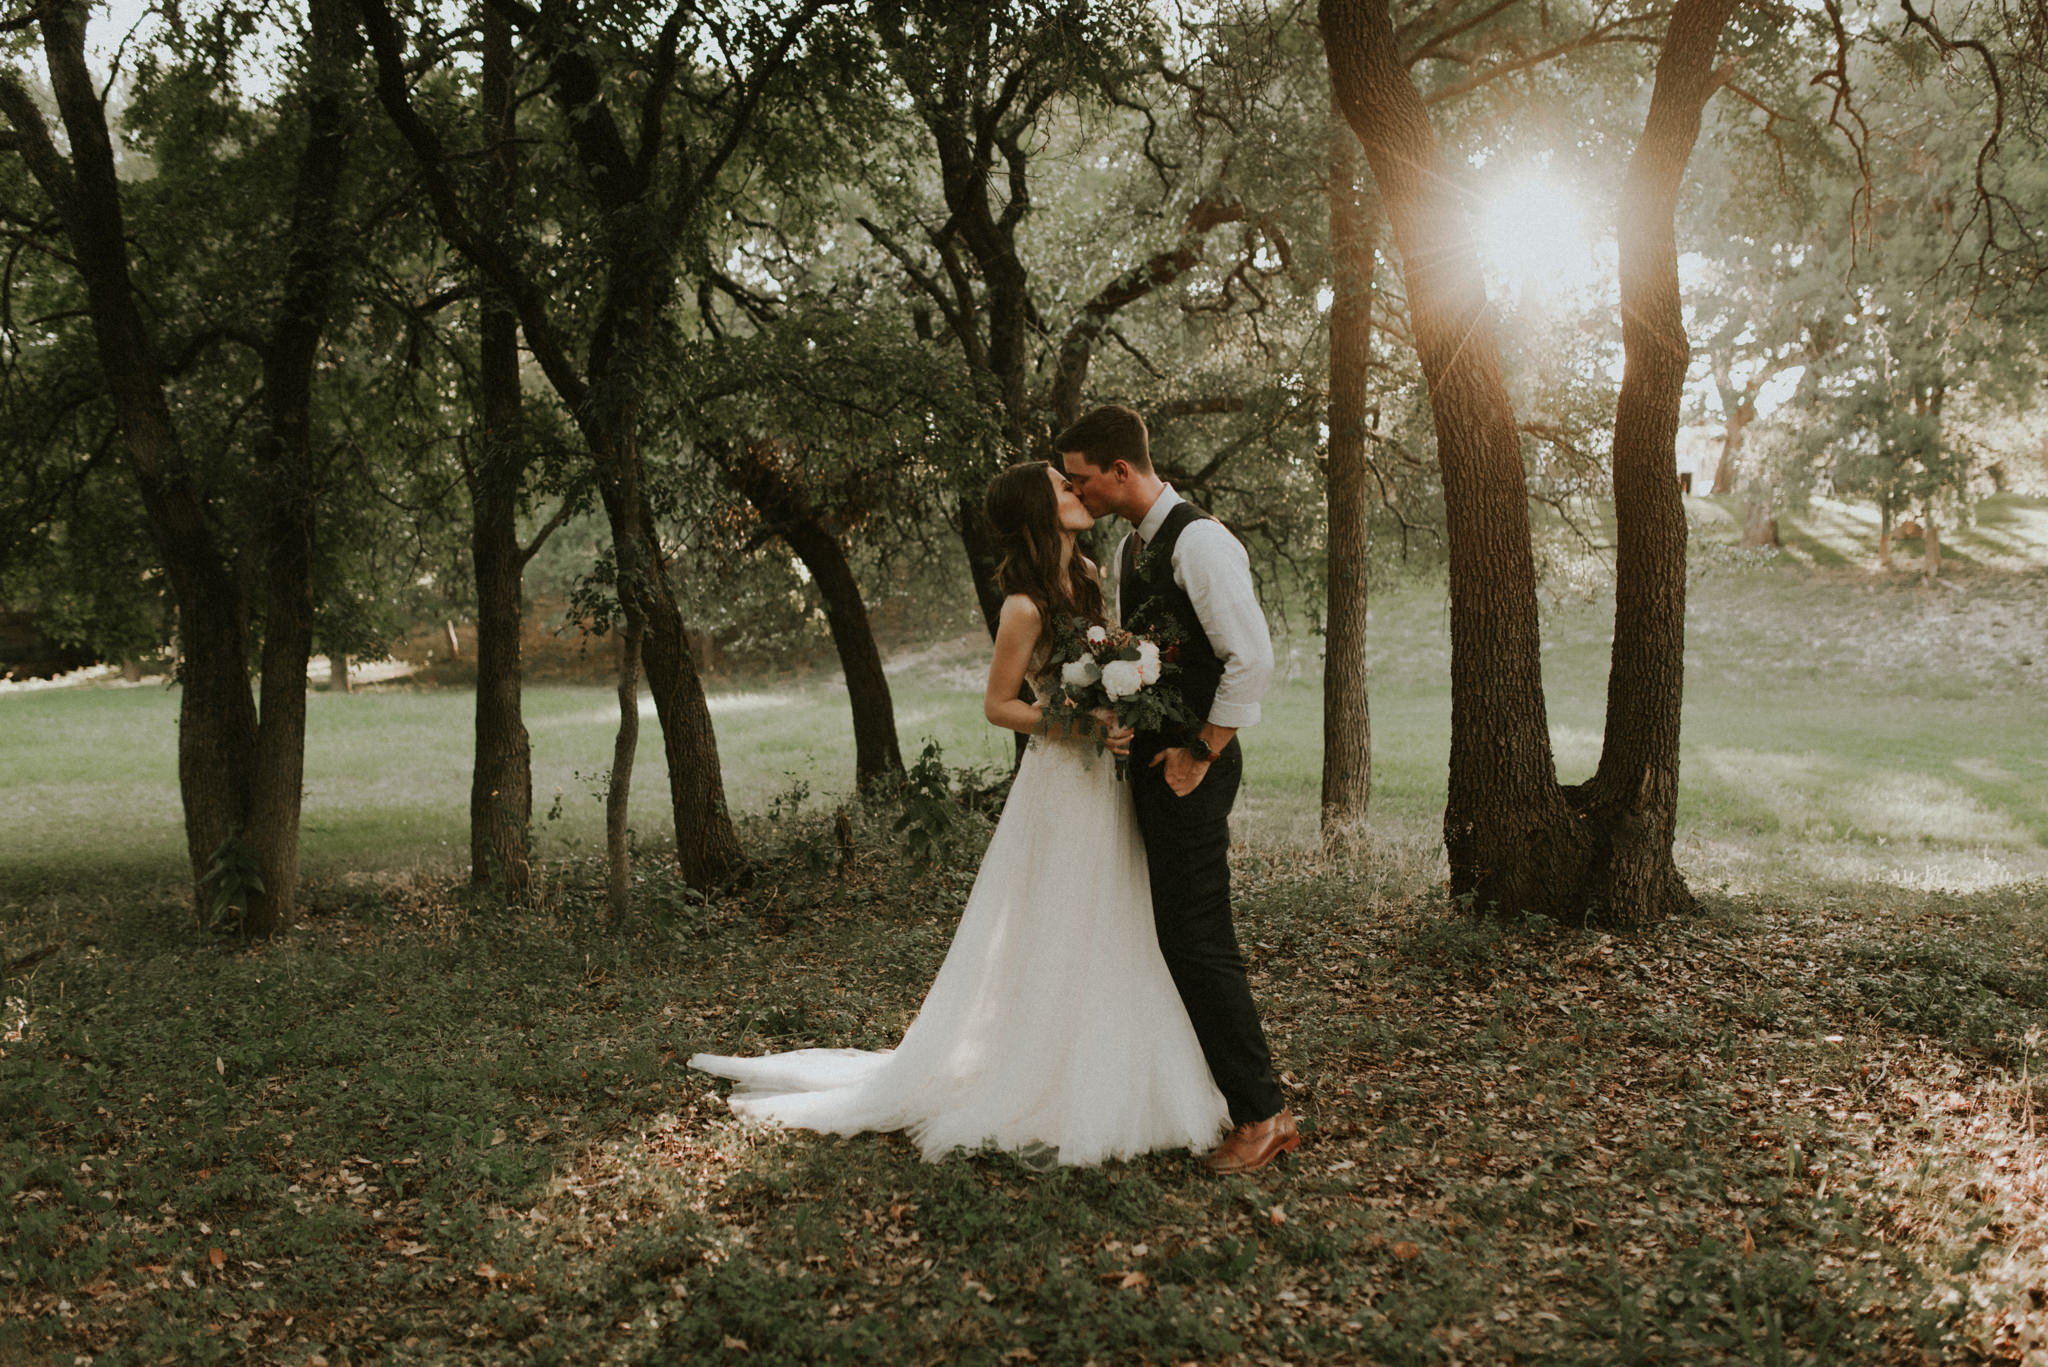 Intimate-Cathedral-Oaks-Wedding-Green-Oak-Forest-Floral-Archway-Lace-Wedding-Dress-Kerlyn-Van-Gelder-Photography-Austin-Wedding-Photographer